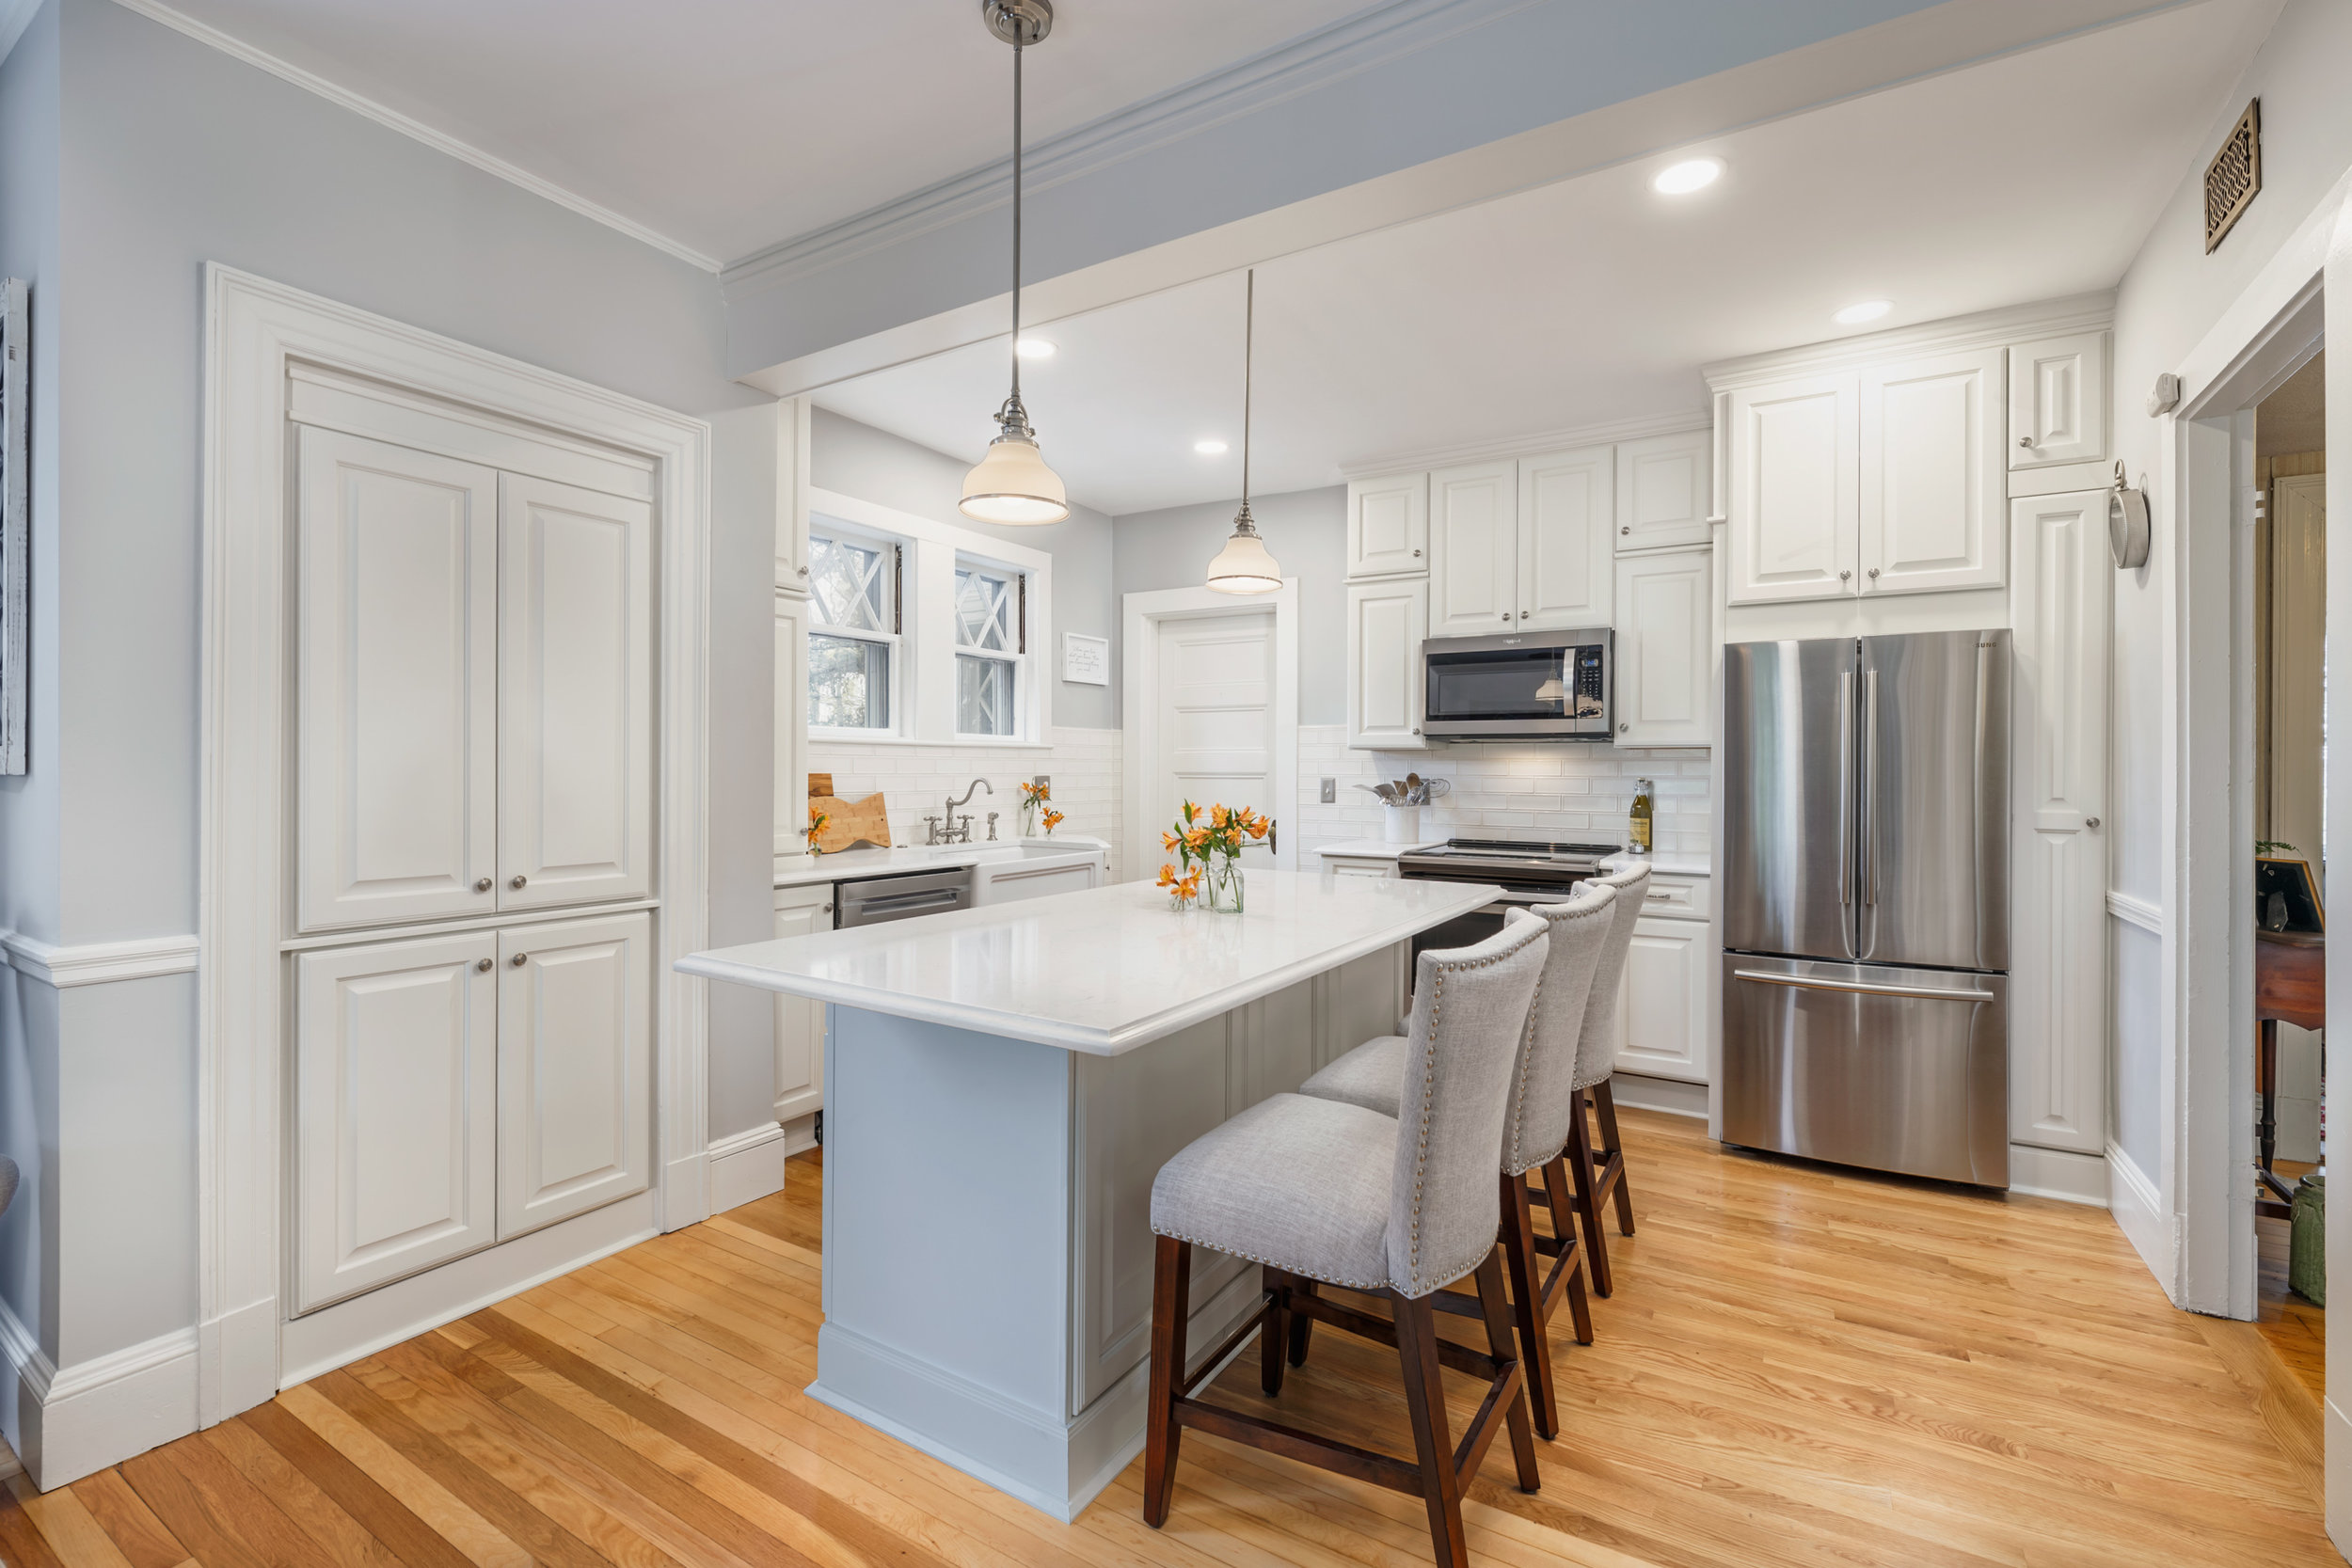 Complete kitchen - Angled looking toward island and fridge.jpg